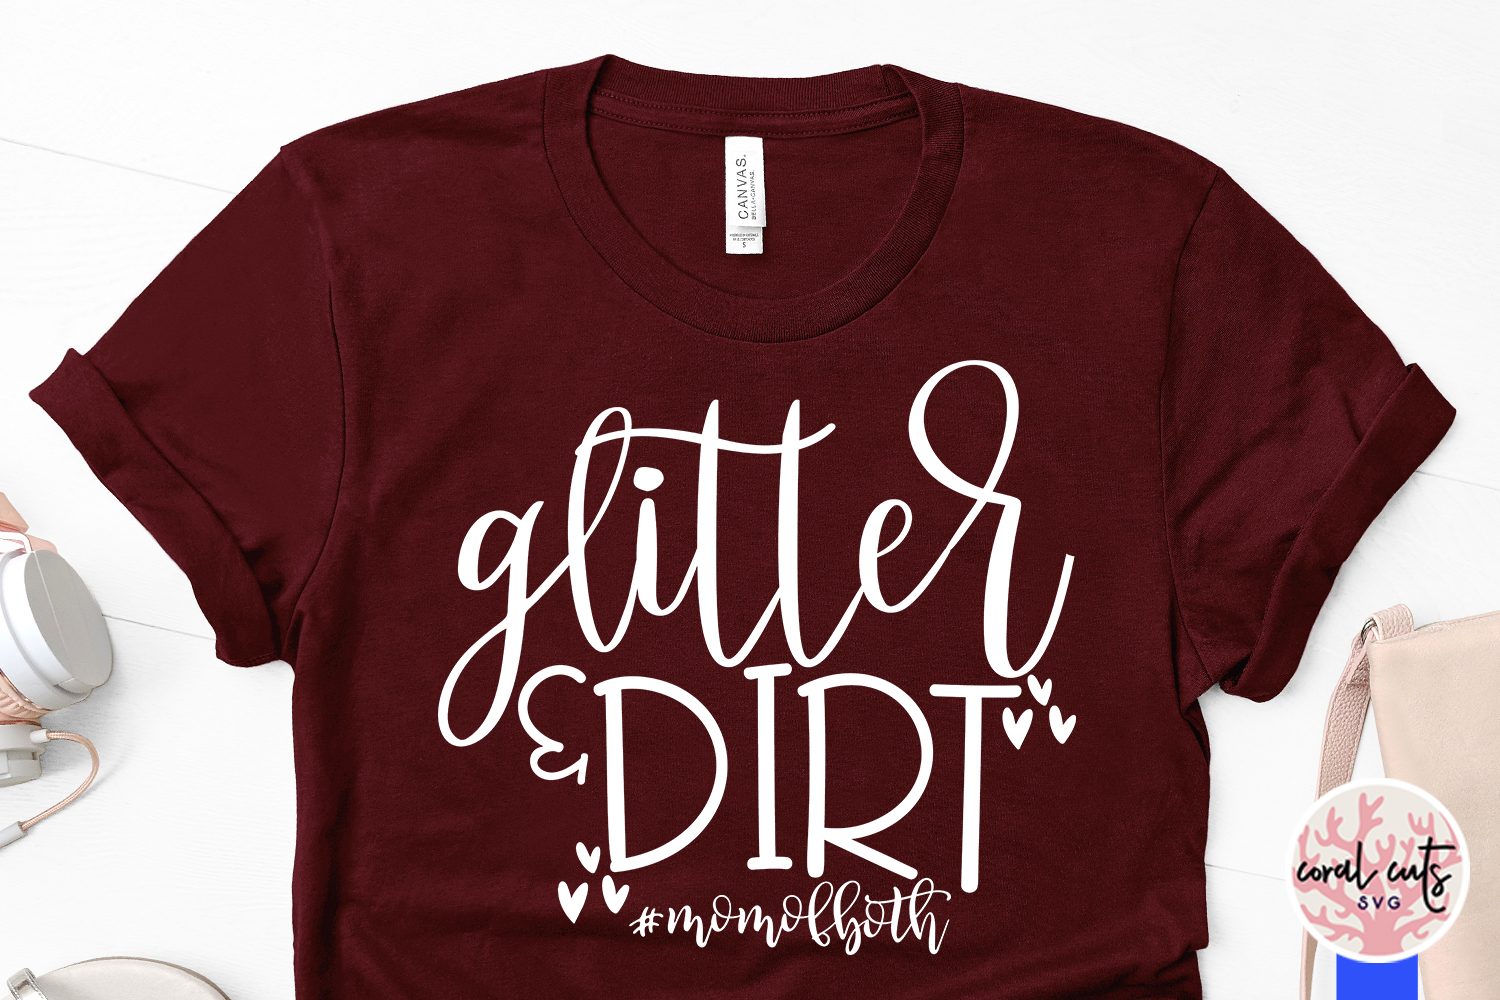 Glitter & Dirt #momofboth - Mother SVG EPS DXF PNG Cut File example image 3